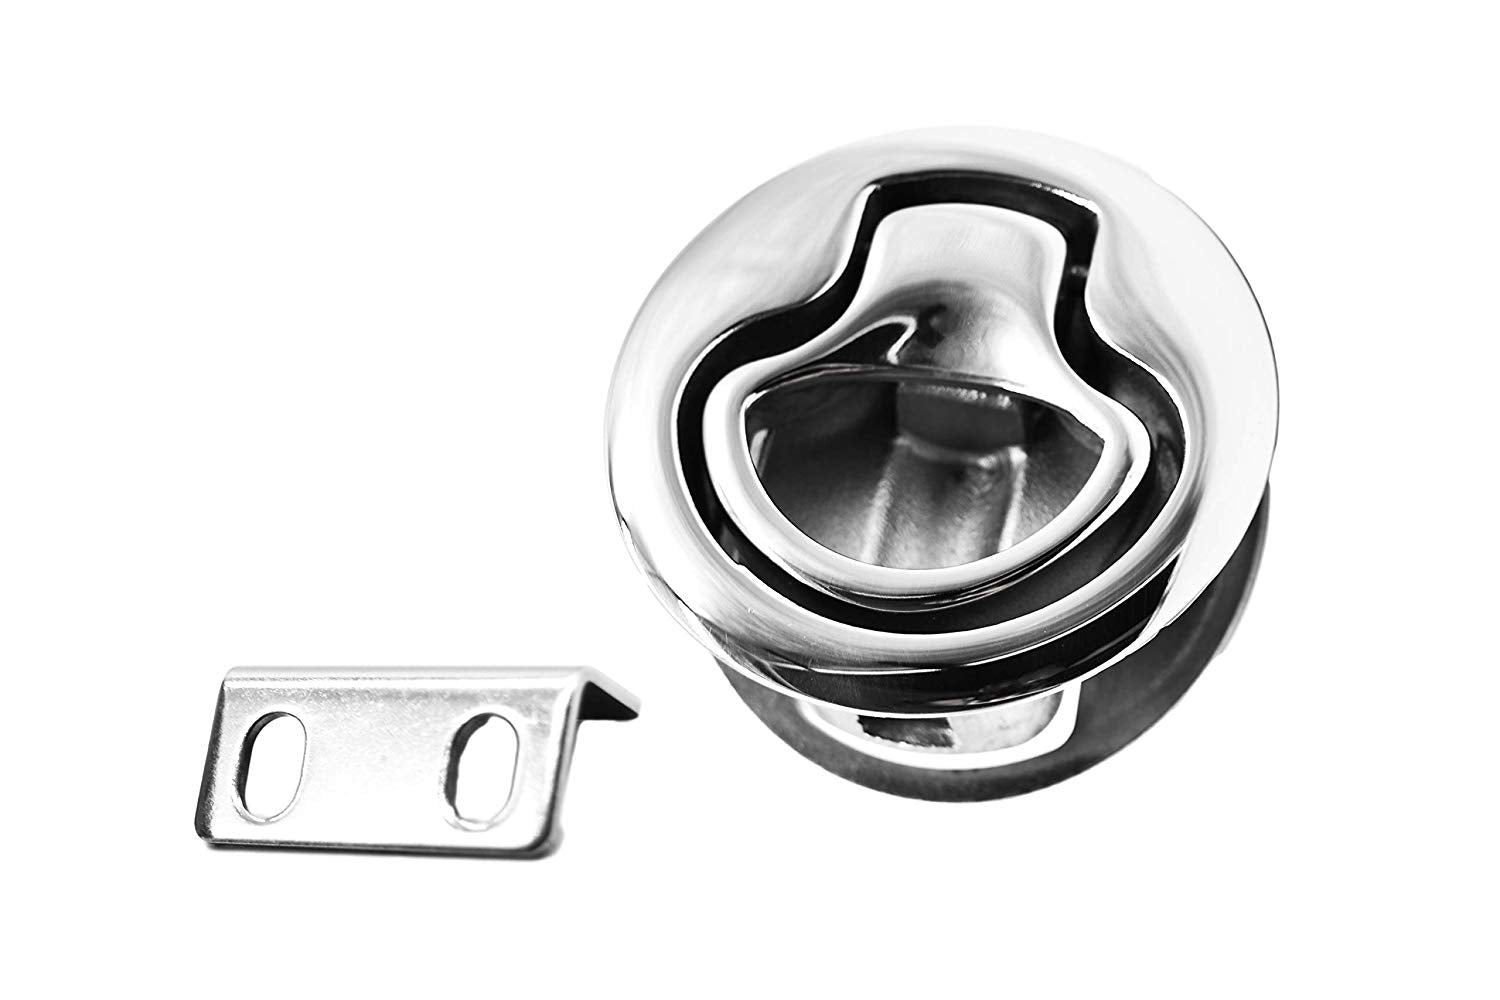 Round Hatch Flush Pull Slam Latch for Doors - marinecityhardware.com